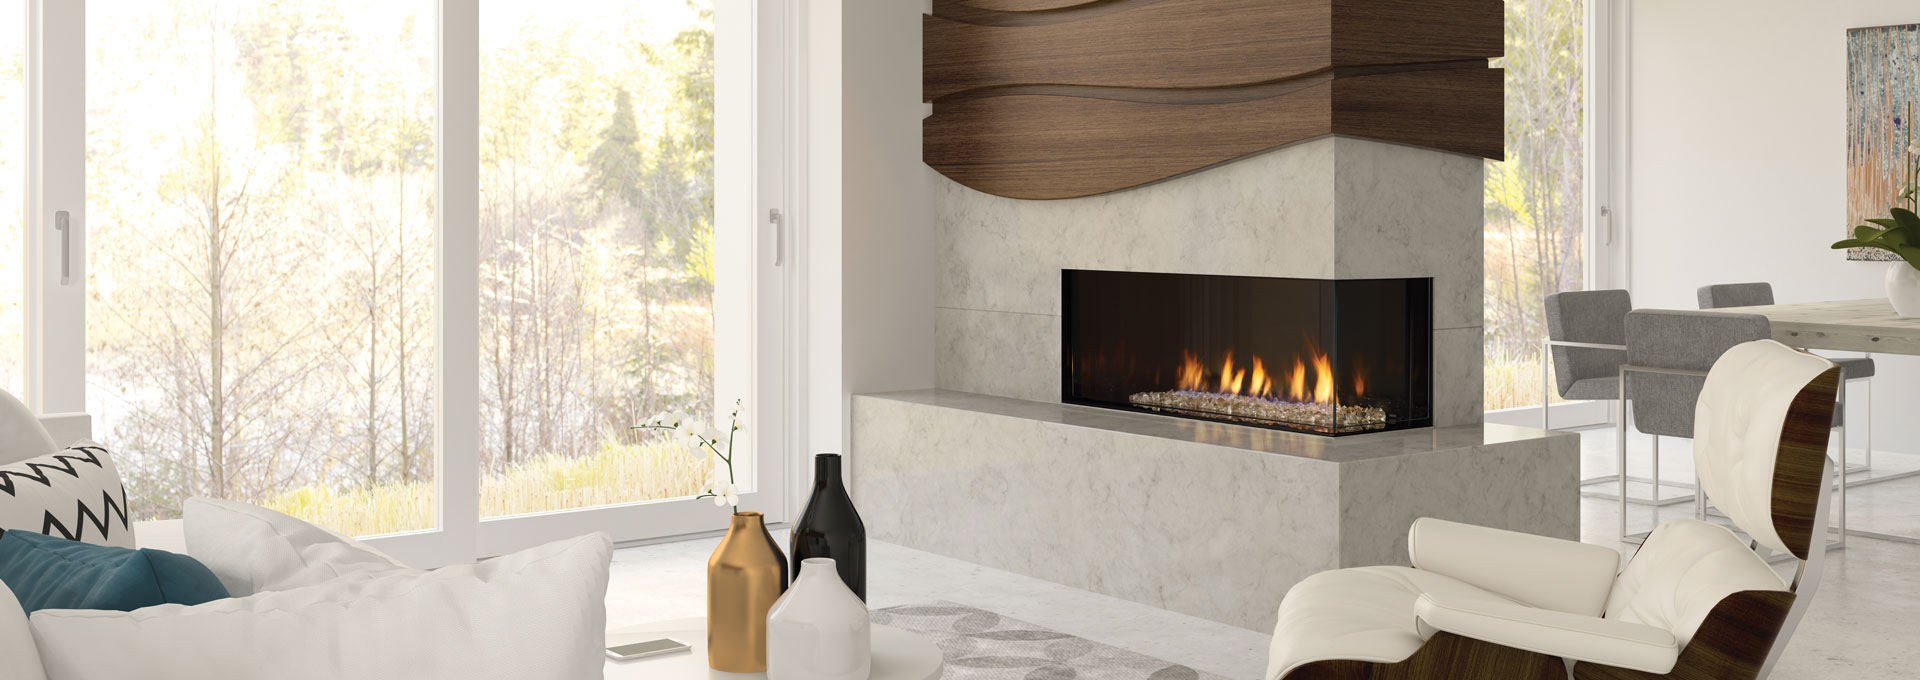 gas fireplaces insulation installers bay area sdi insulation